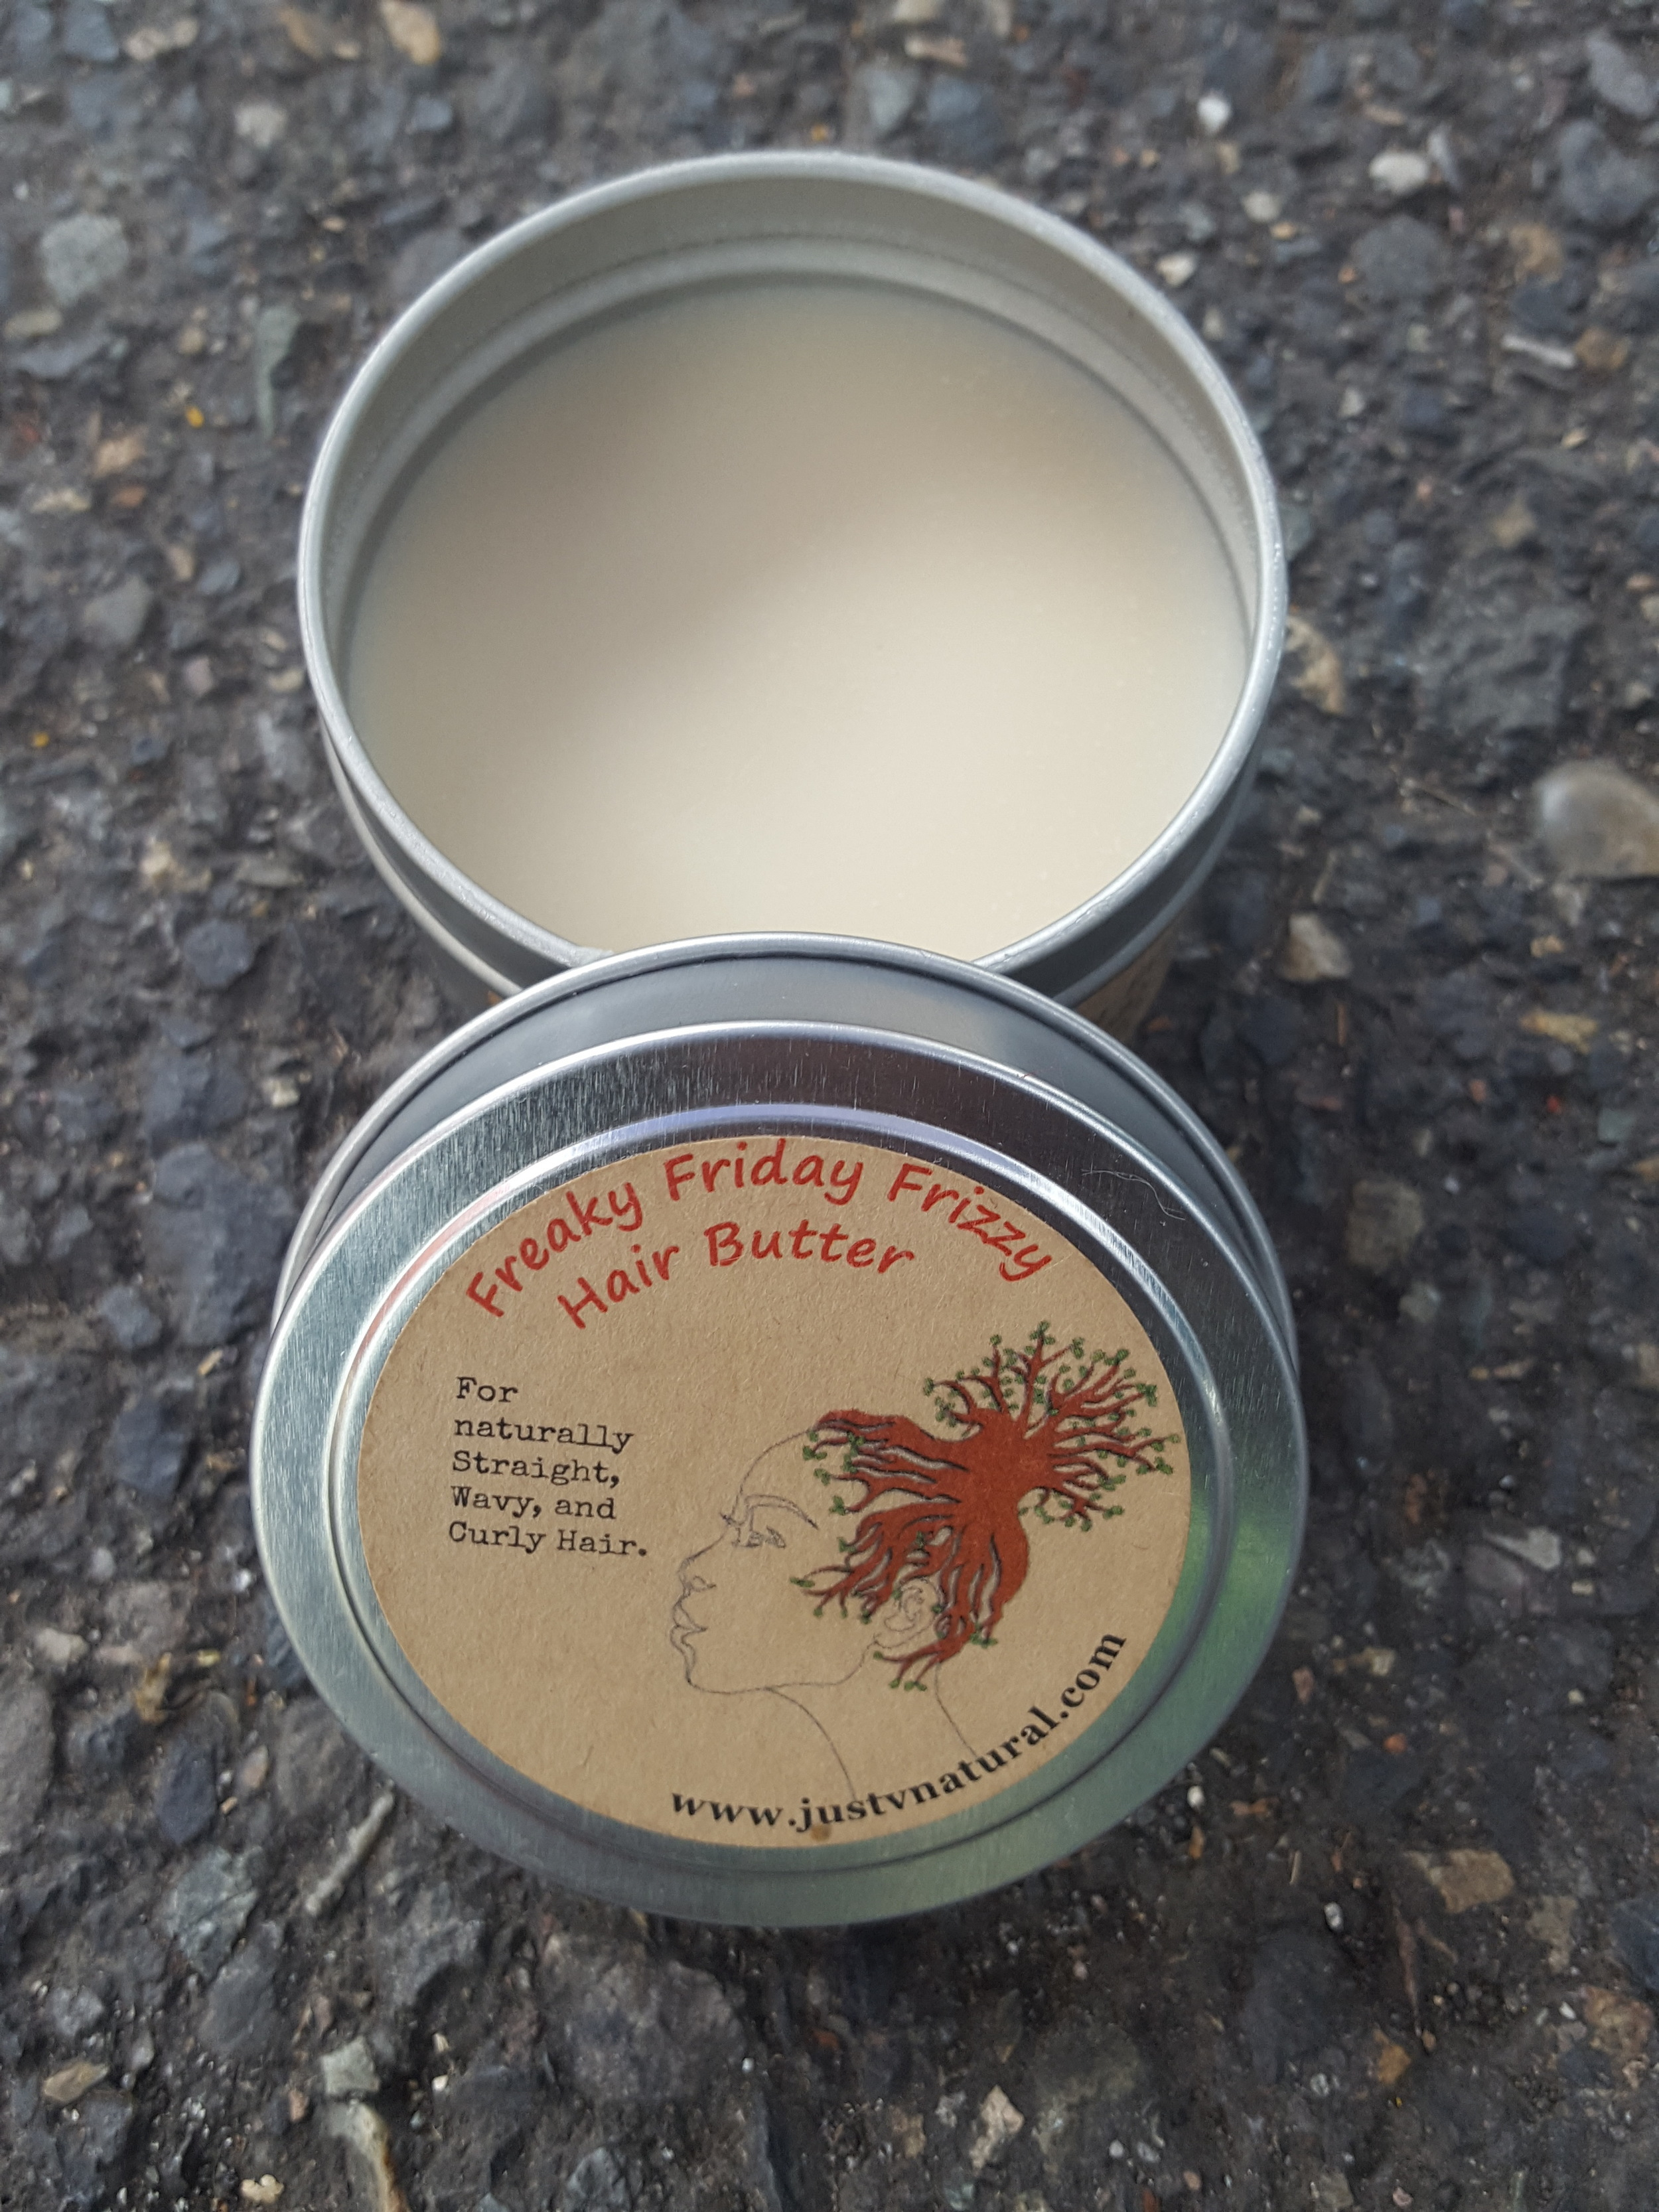 Freaky Friday Frizzy Hair Butter — Just V Natural